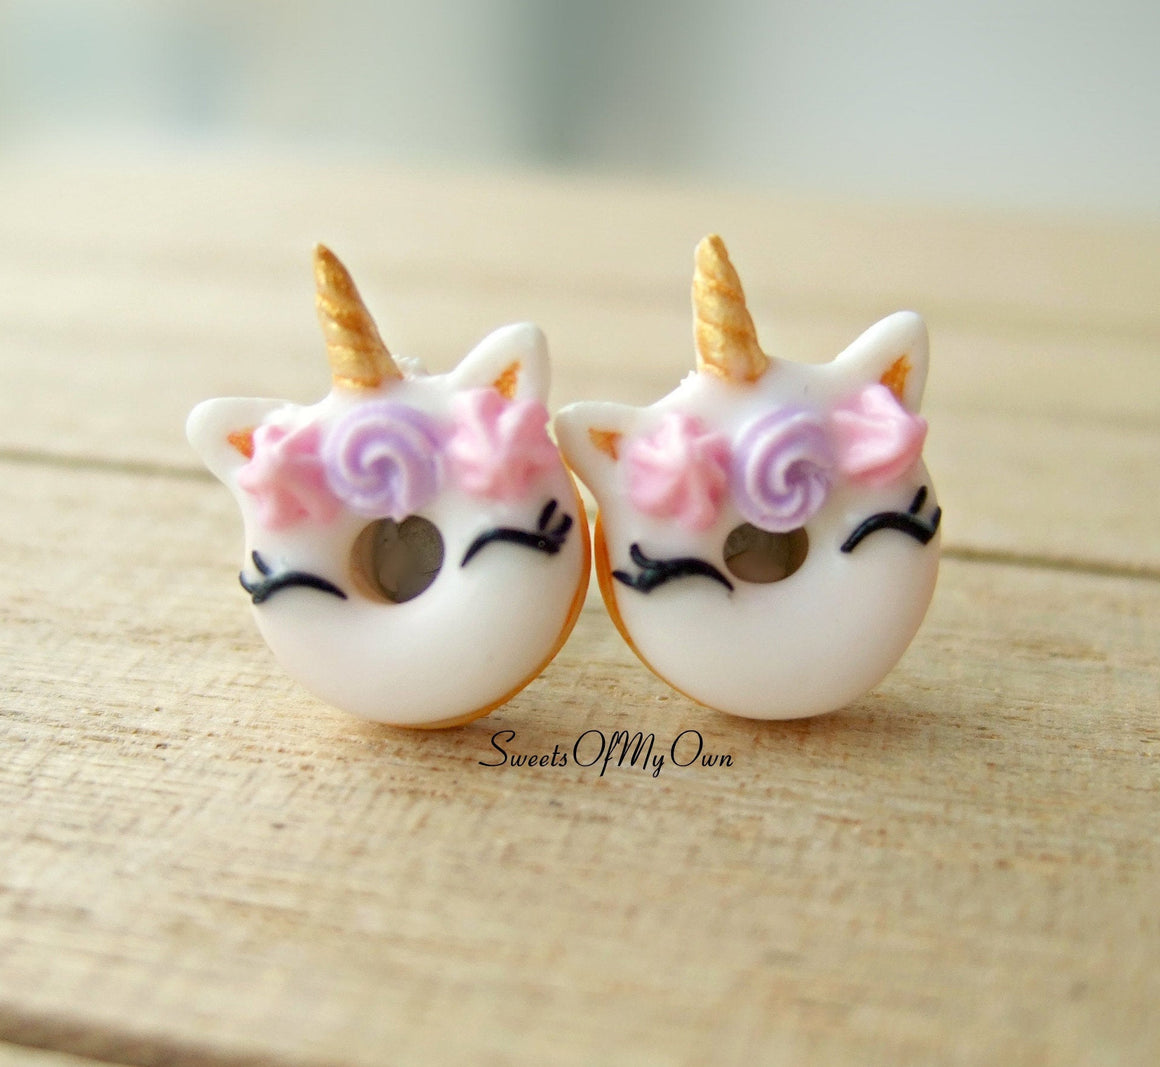 Smiling Unicorn Doughnut Earrings Stud Earrings